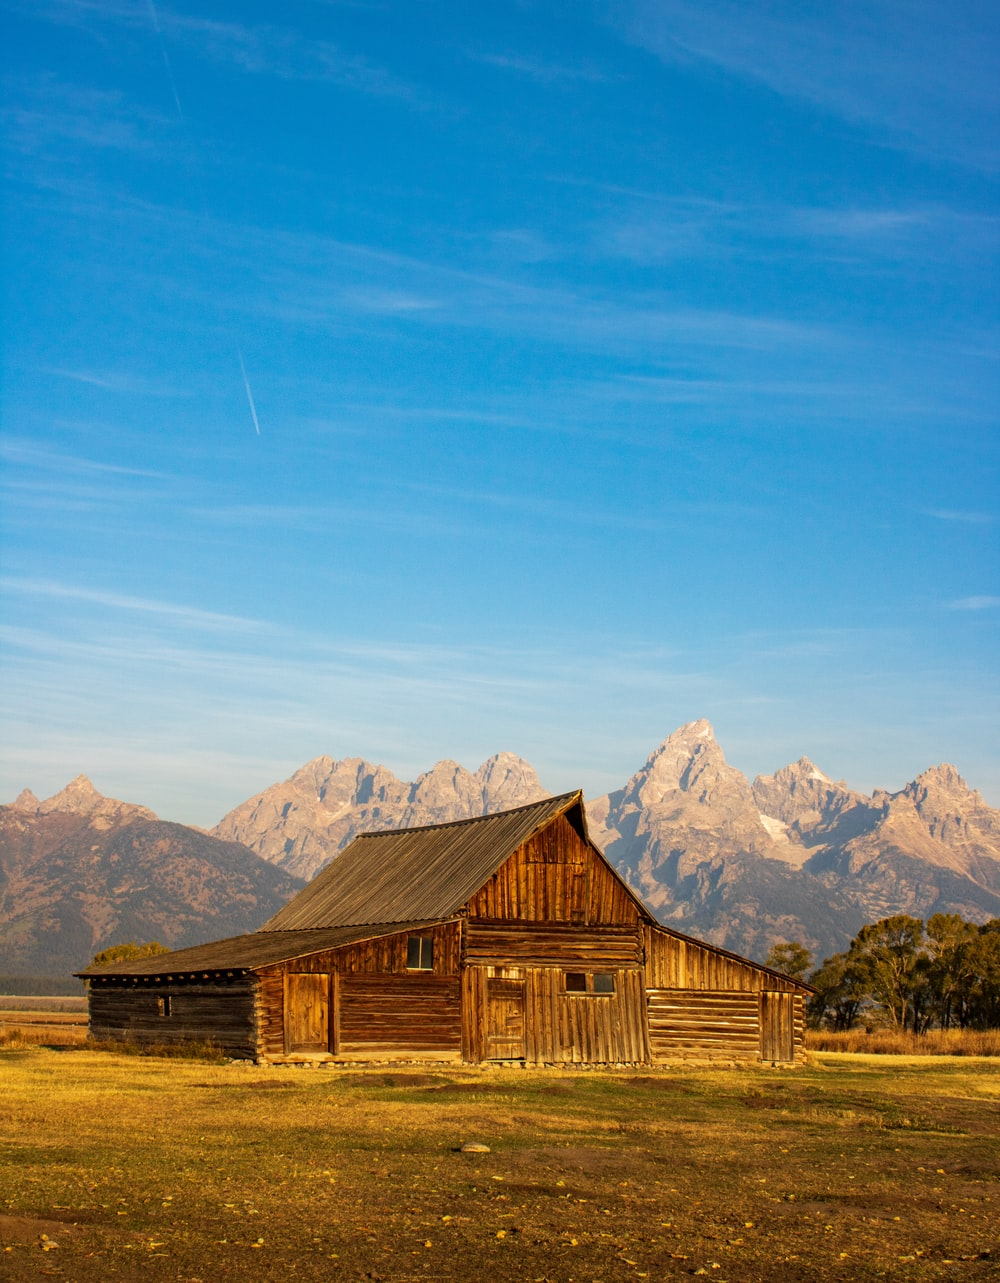 brown wooden house on brown grass field near mountain under blue sky during daytime